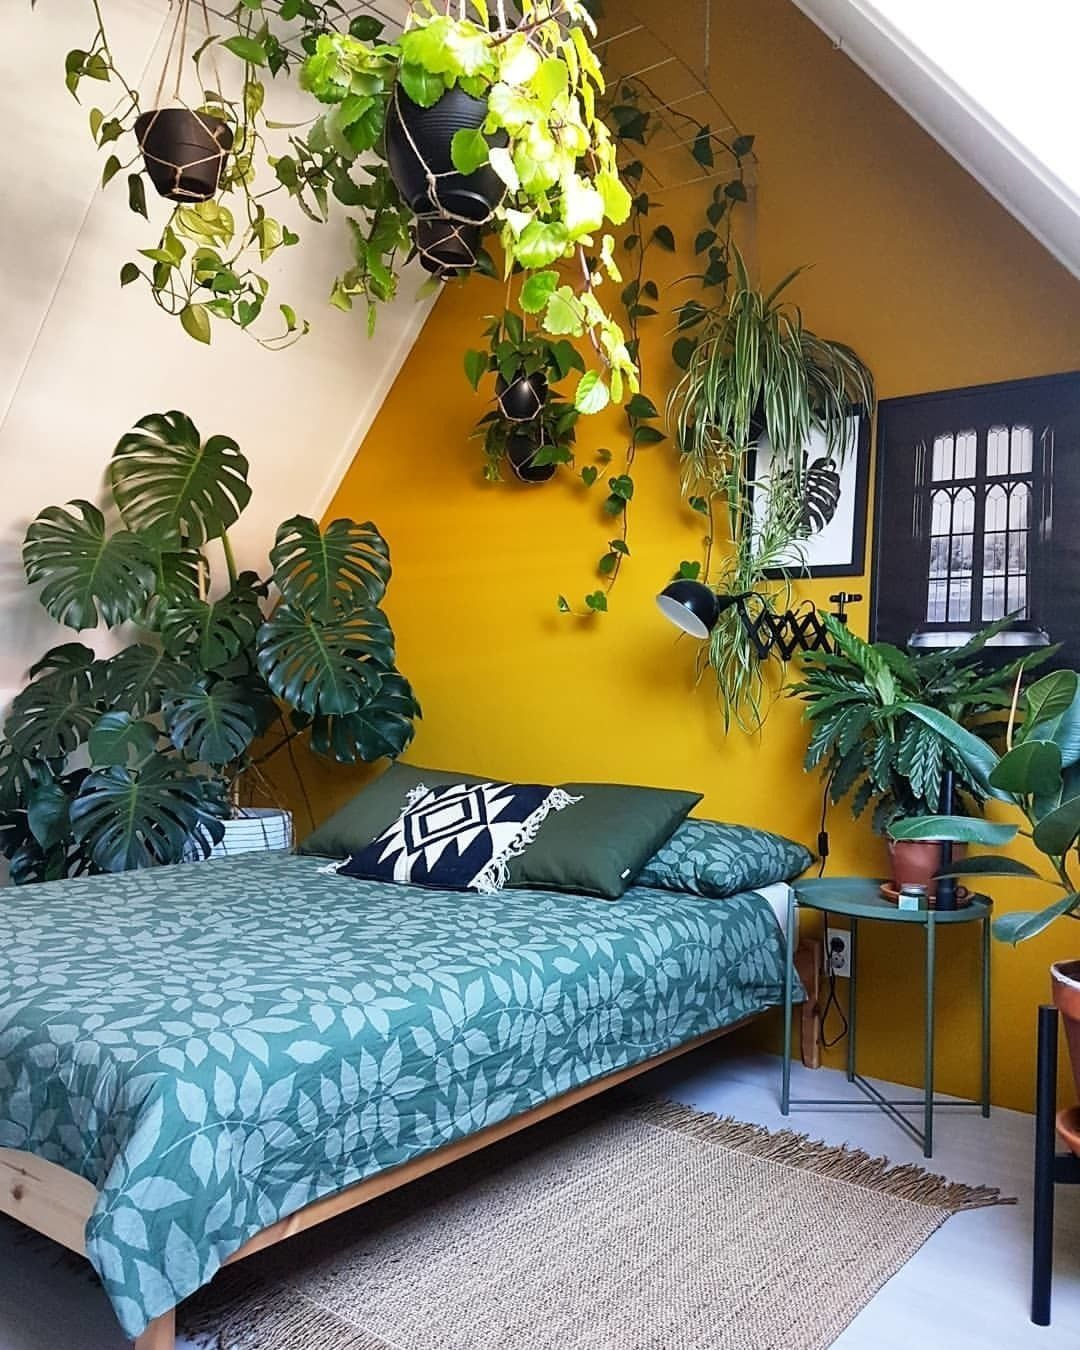 Transform your bedroom into your private jungle! Image by